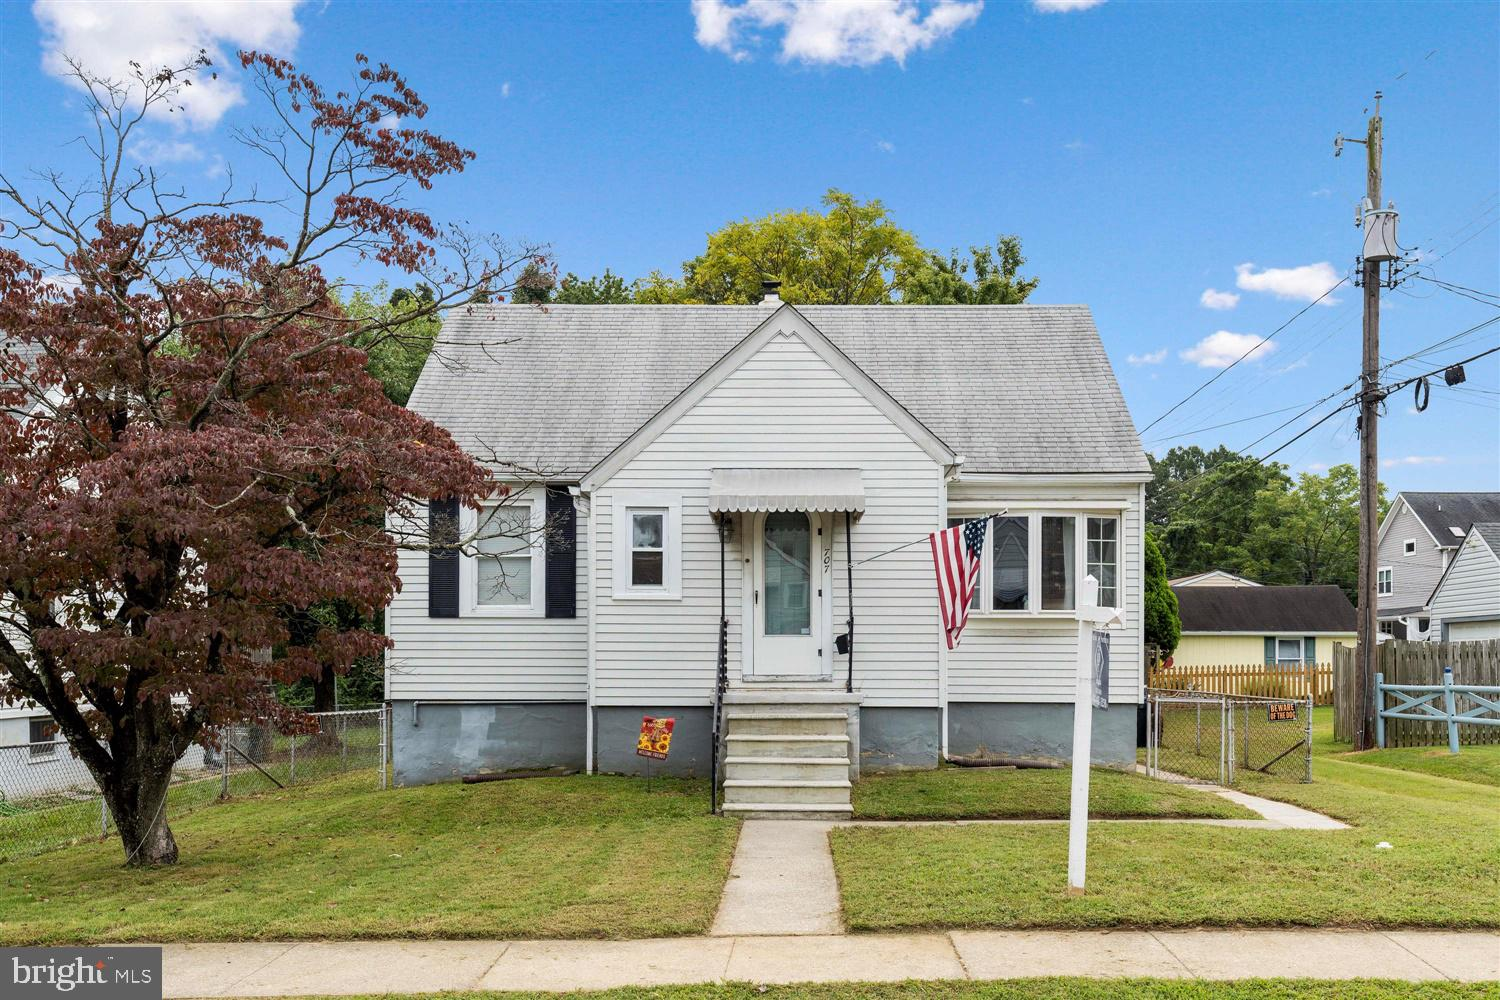 4BD/2FB Cape Cod with large flat lot located on a dead end street! Possible 5th bedroom in basement